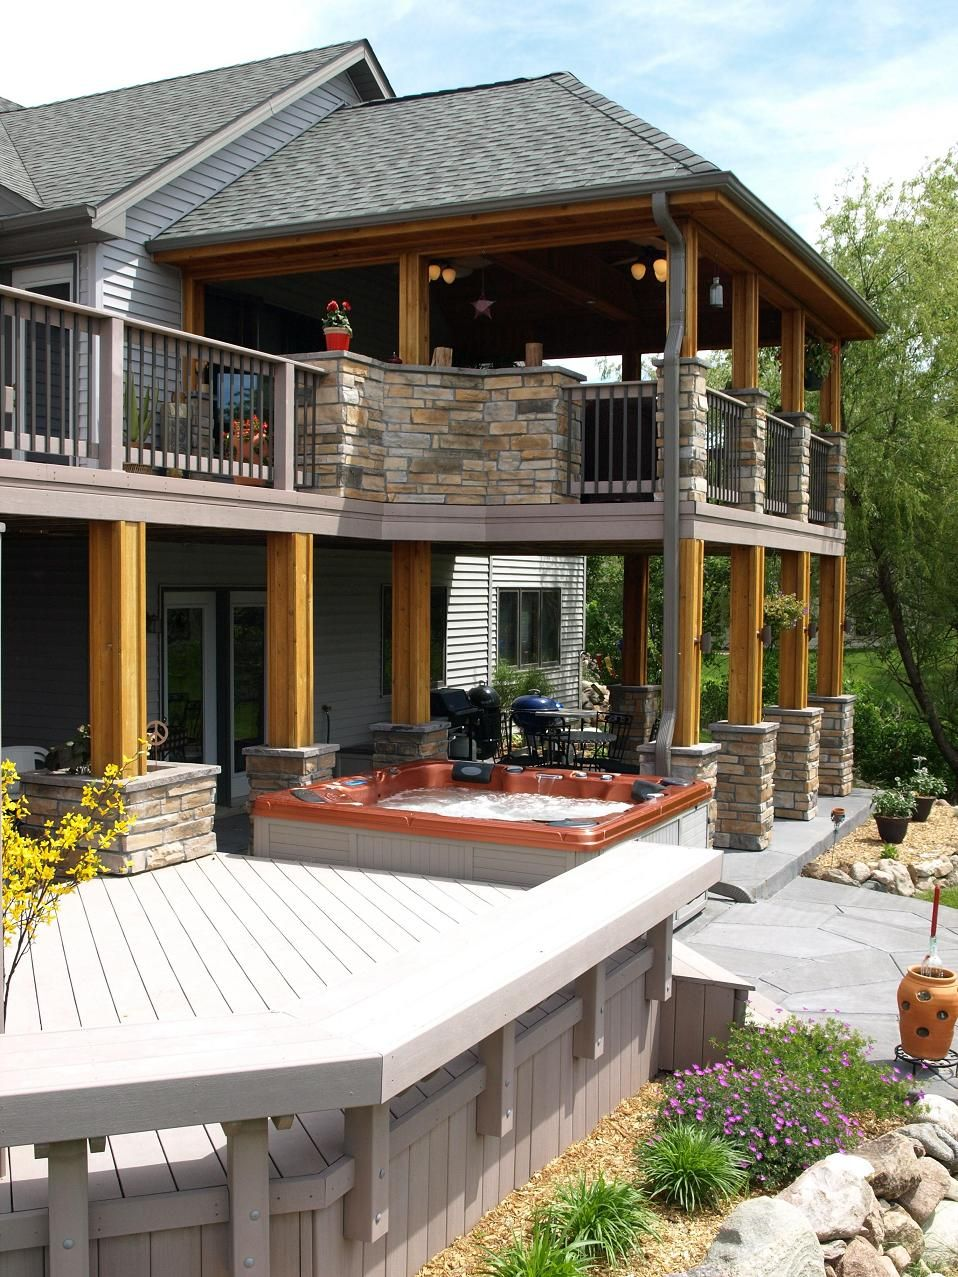 Love This Exterior! Thinking About Adding Stone To Deck Beams, Adding On To Screened Porch And